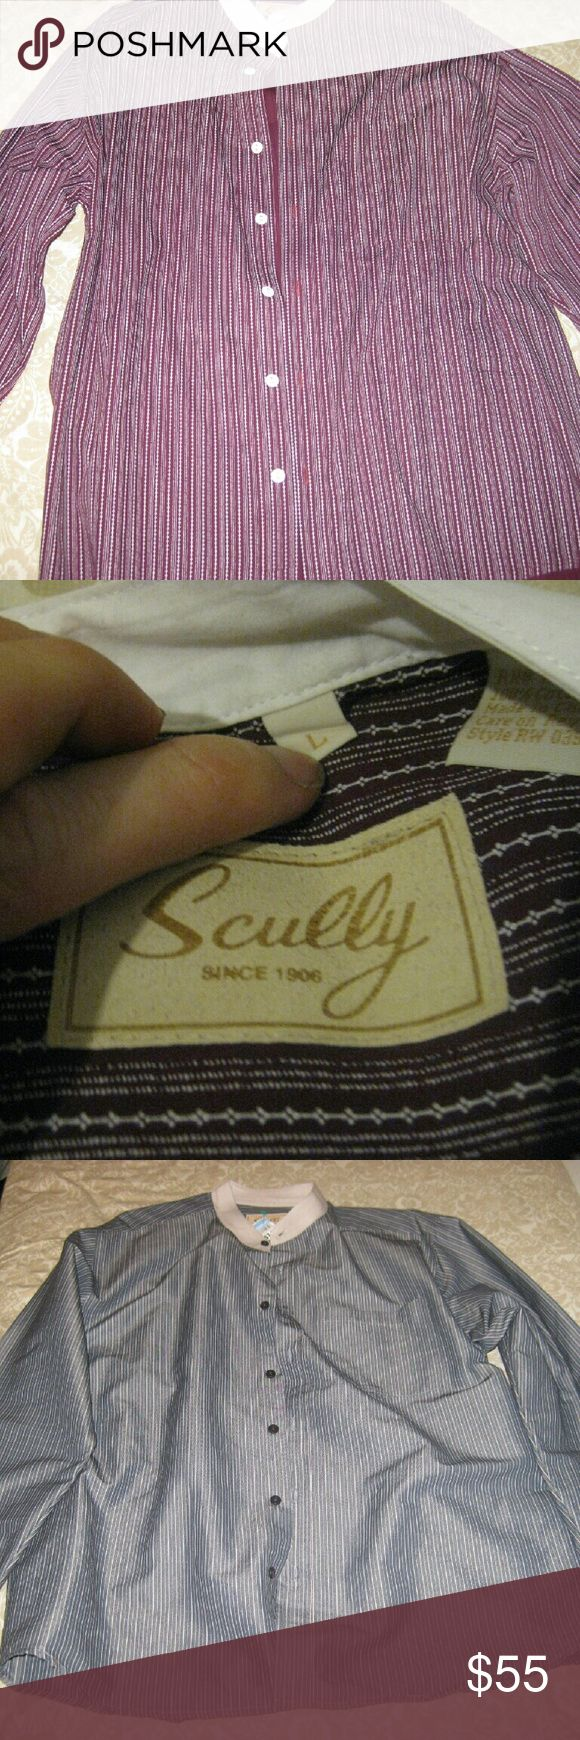 Scully Men's Shirt Western Reenactor Sz Large excellent shape  Scully Men's Shirt Western Reenactor Sz Large 1880's Style Lot of 2  Check pictures to ensure this is what your looking for.?  I work hard to accurately represent the product.?  If you have any questions feel free to ask. All feedback is encouraged and appreciated. Scully Shirts Dress Shirts